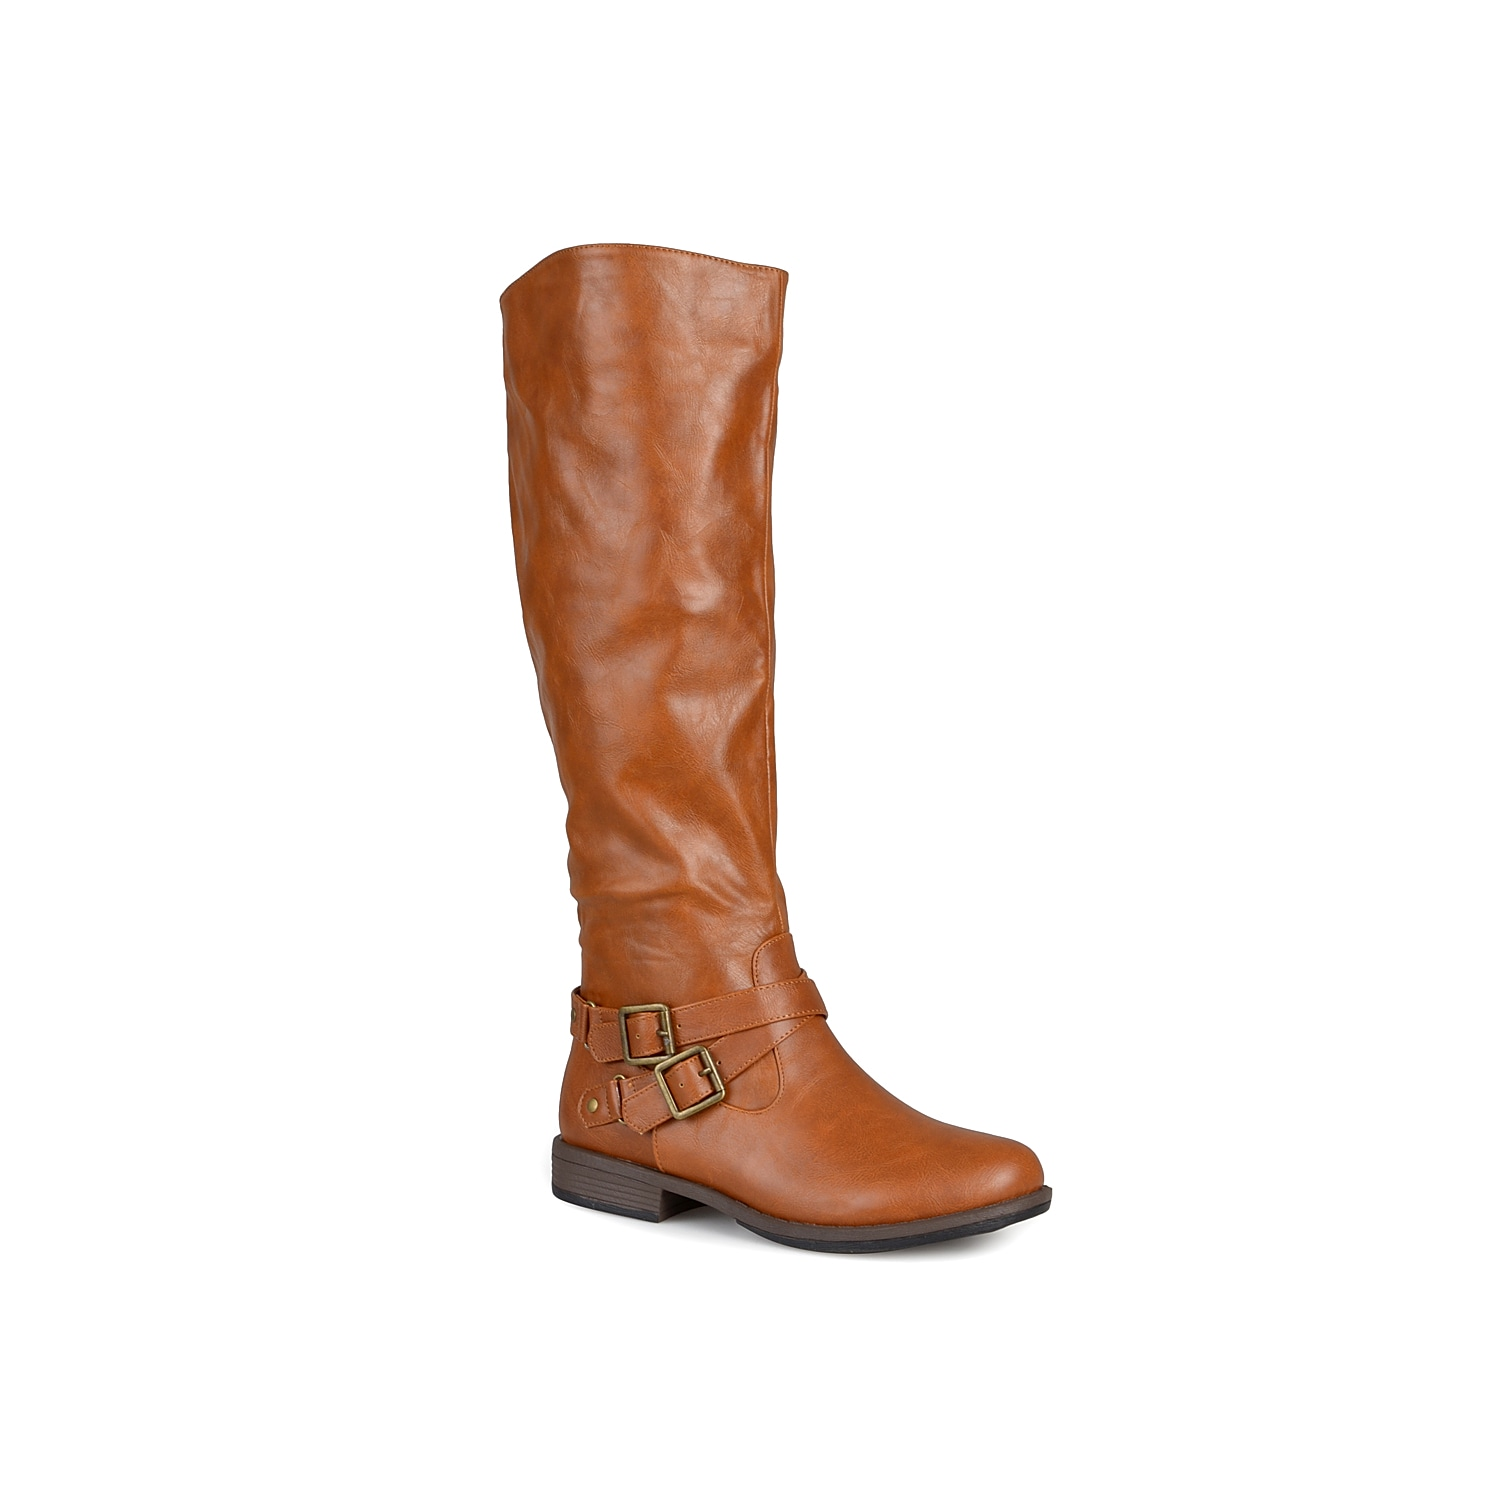 Classic and versatile, the April knee high boot from Journee Collection will become your go-to this fall! With a riding boot design, these trendy tall boots are a must-have for any outfit! Click here for Boot Measuring Guide.